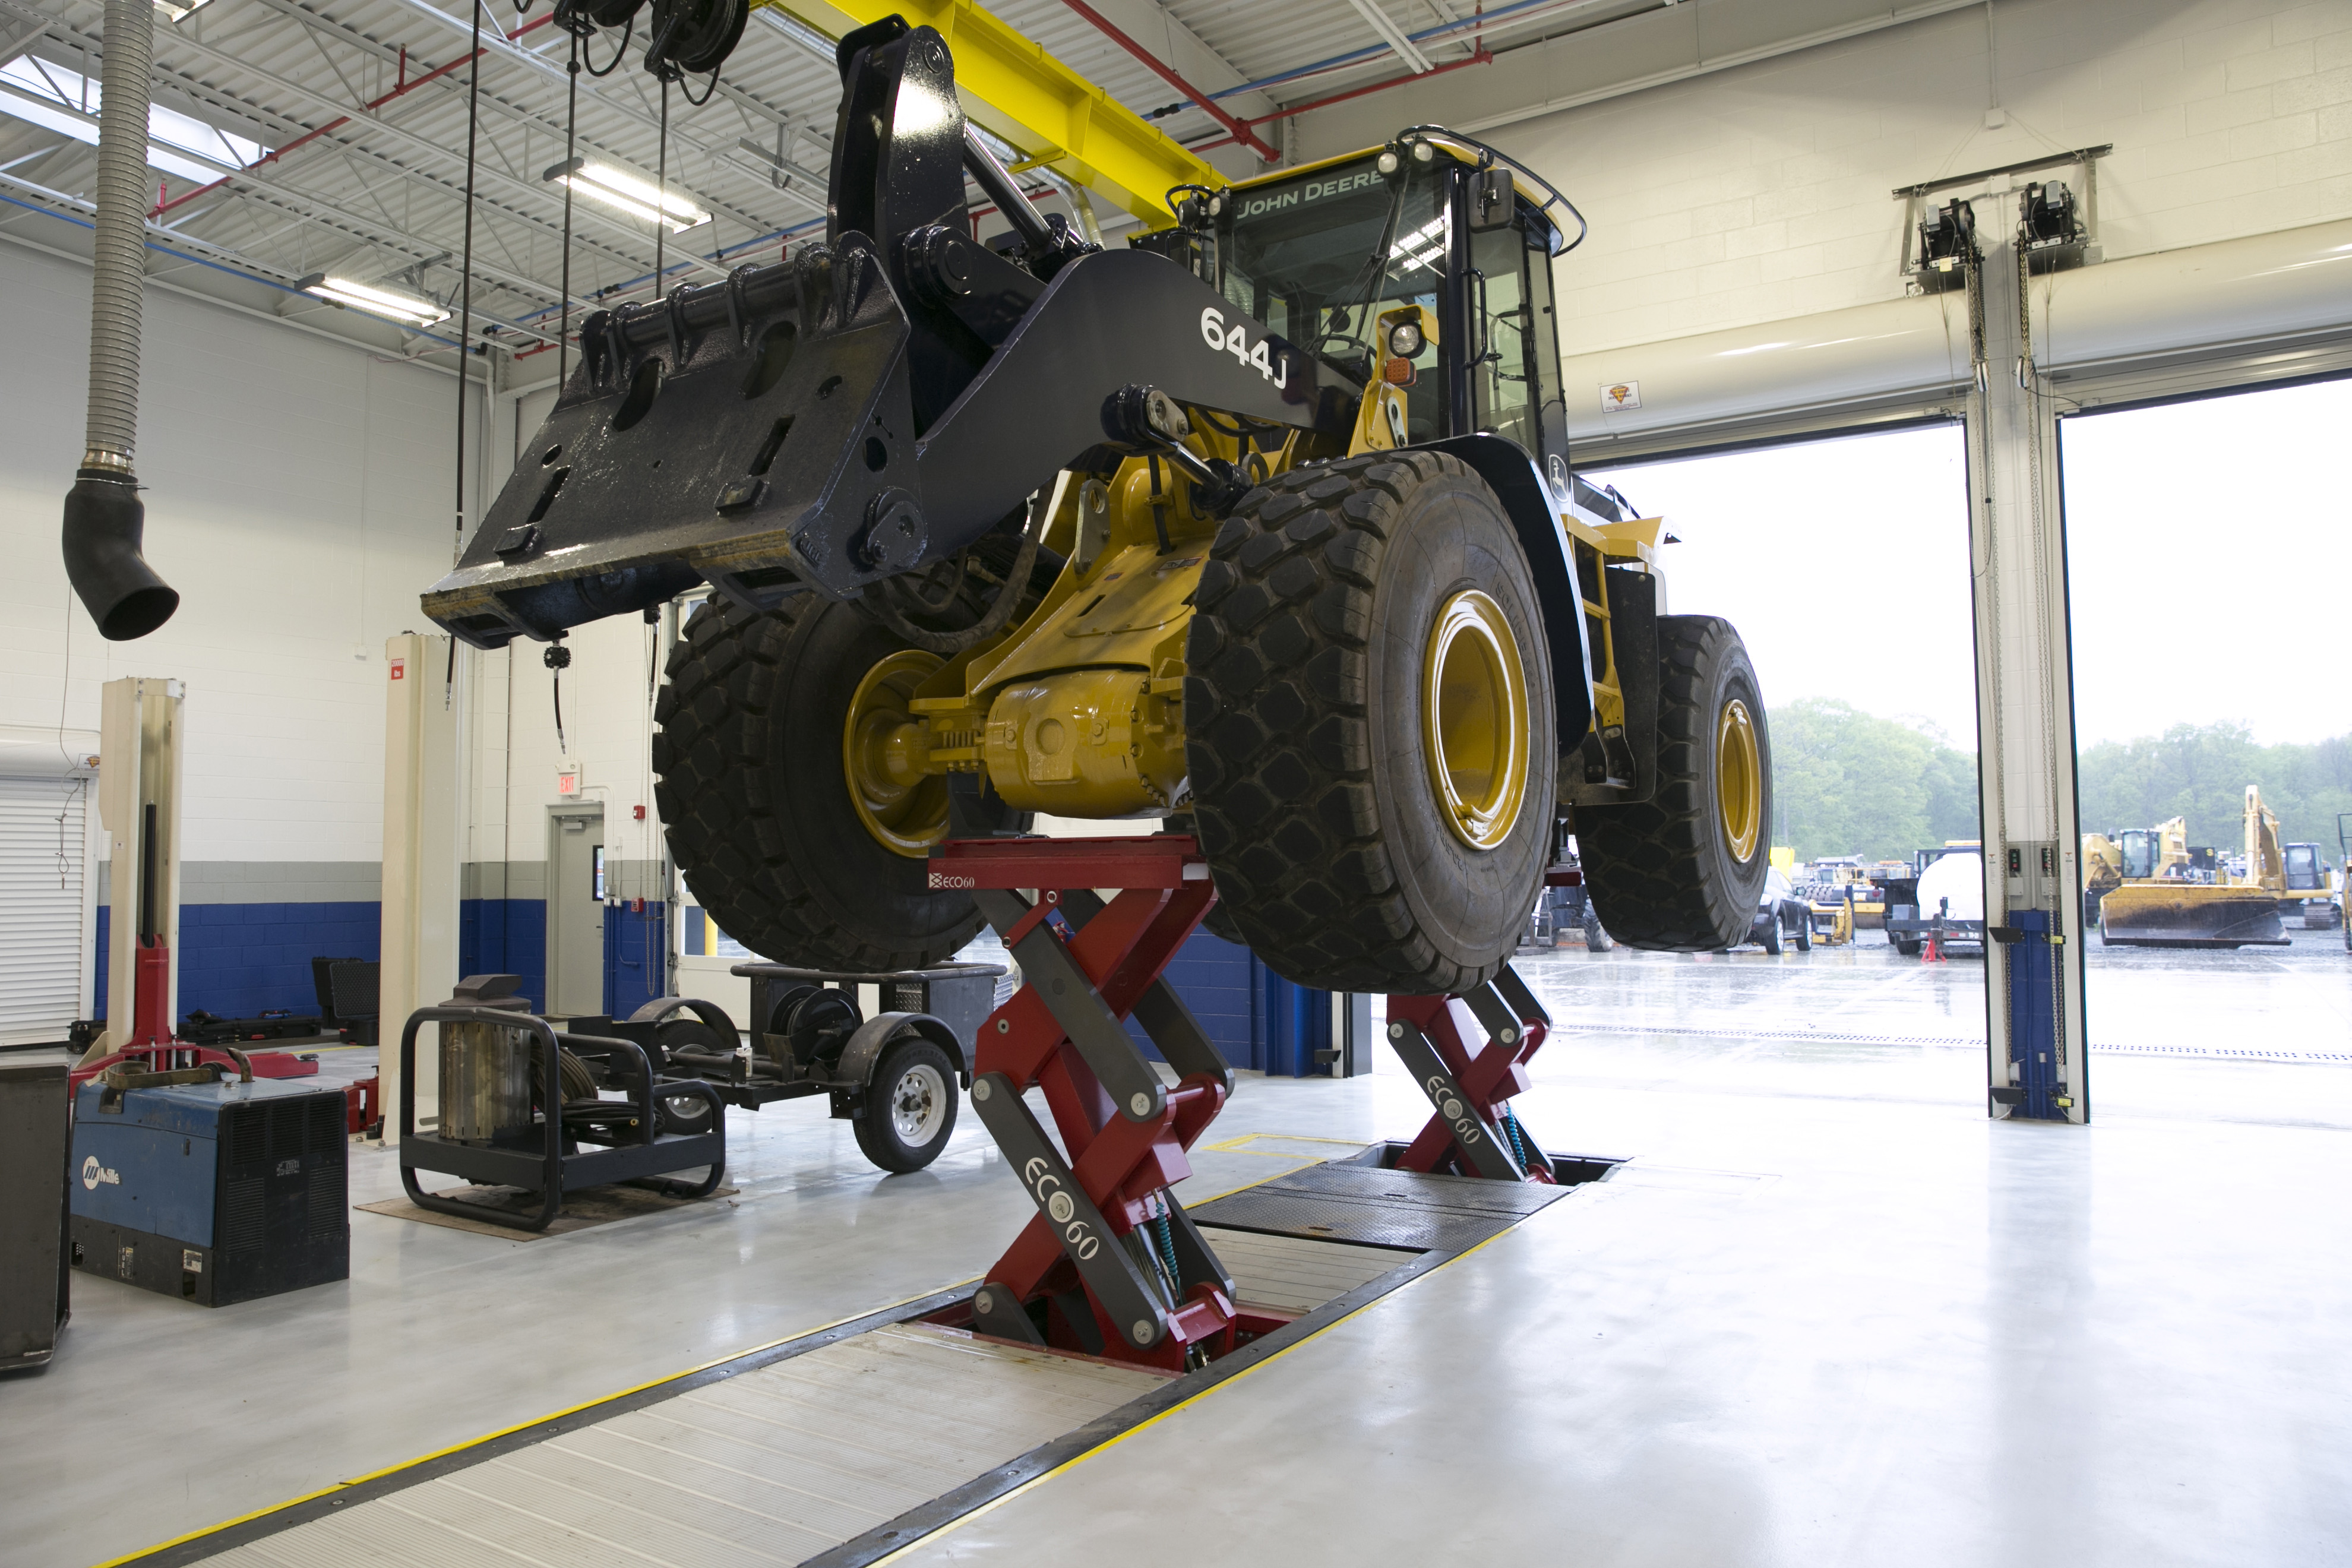 In Ground Car Lift : Top east coast construction firm d annunzio sons taps